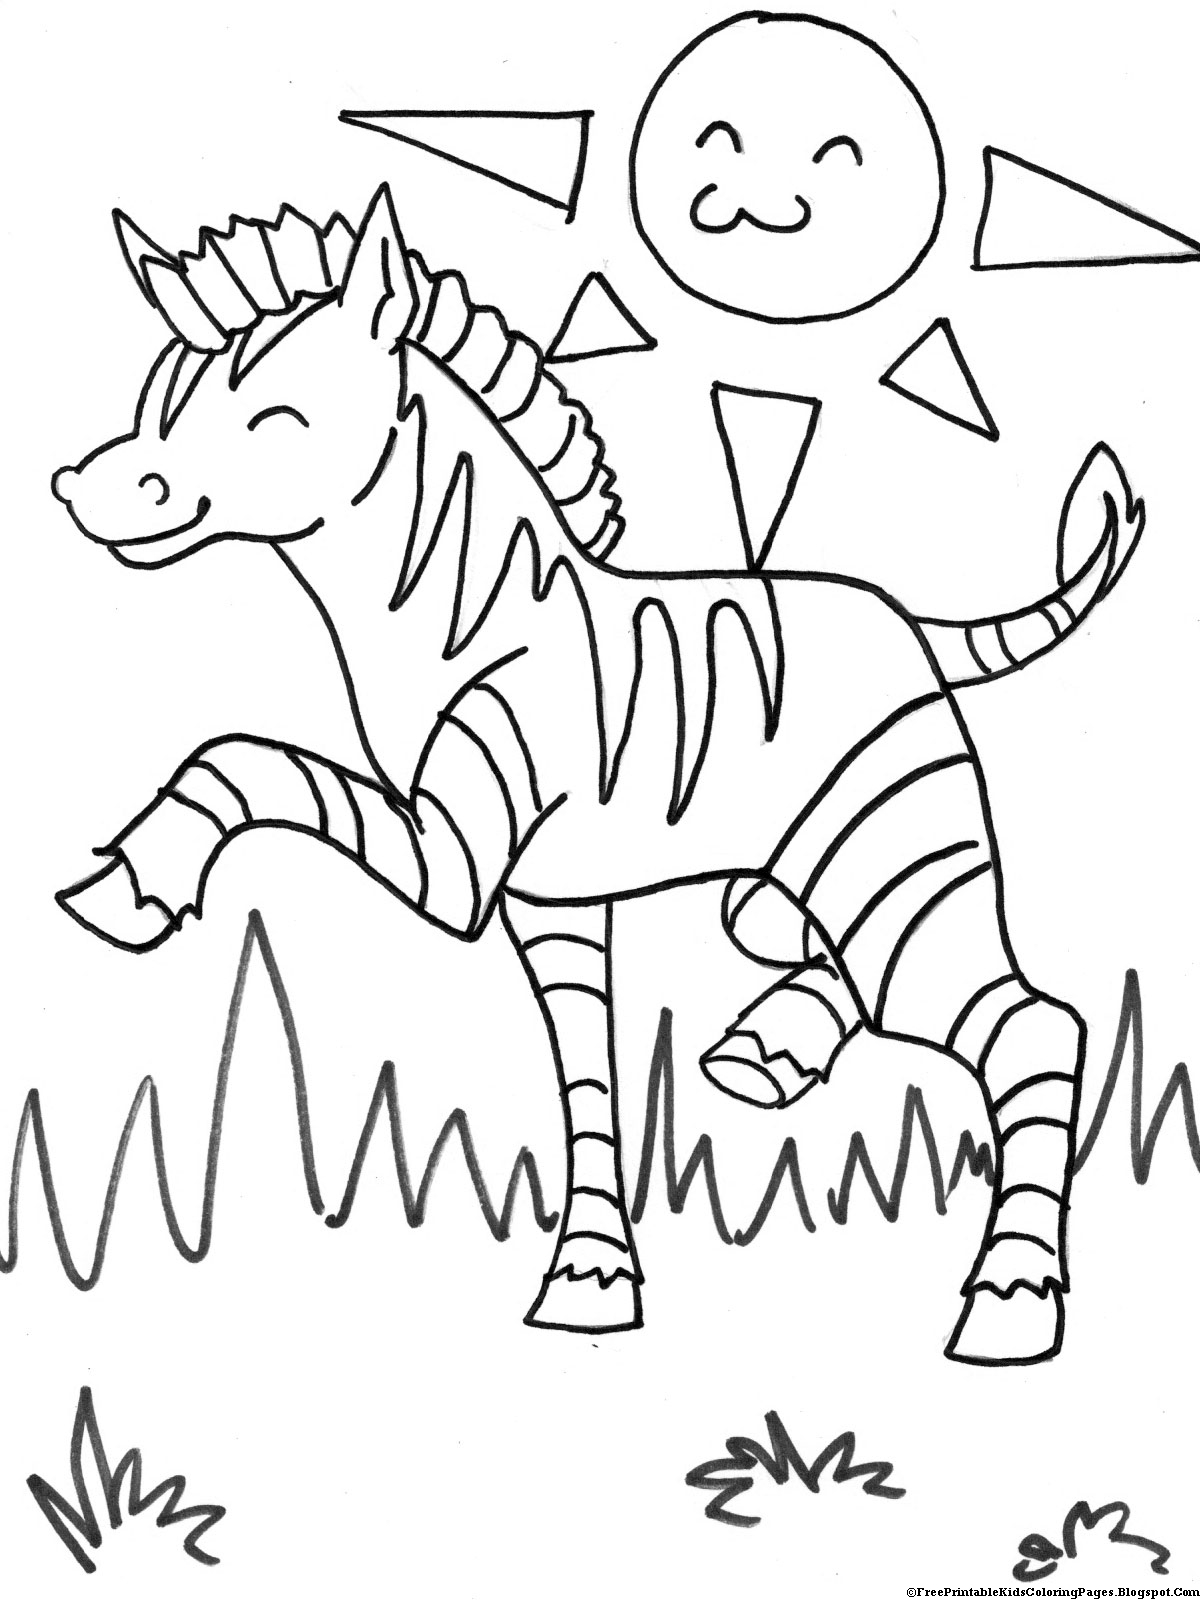 coloring page of zebra zebra coloring pages free printable kids coloring pages of coloring zebra page